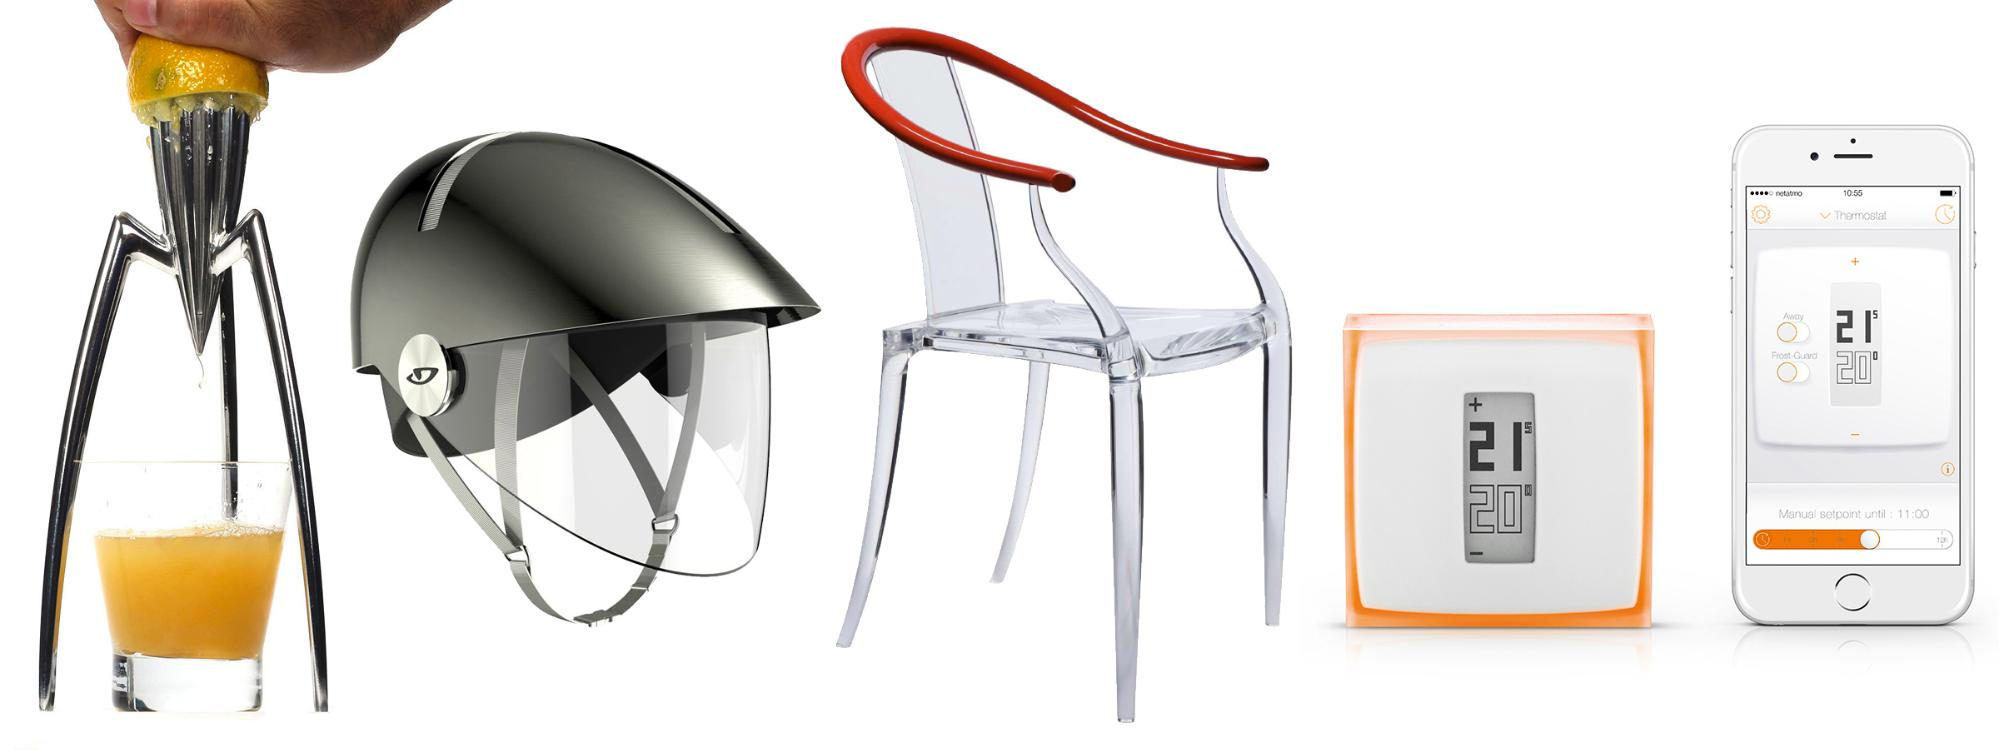 Philippe Starck industrial design examples